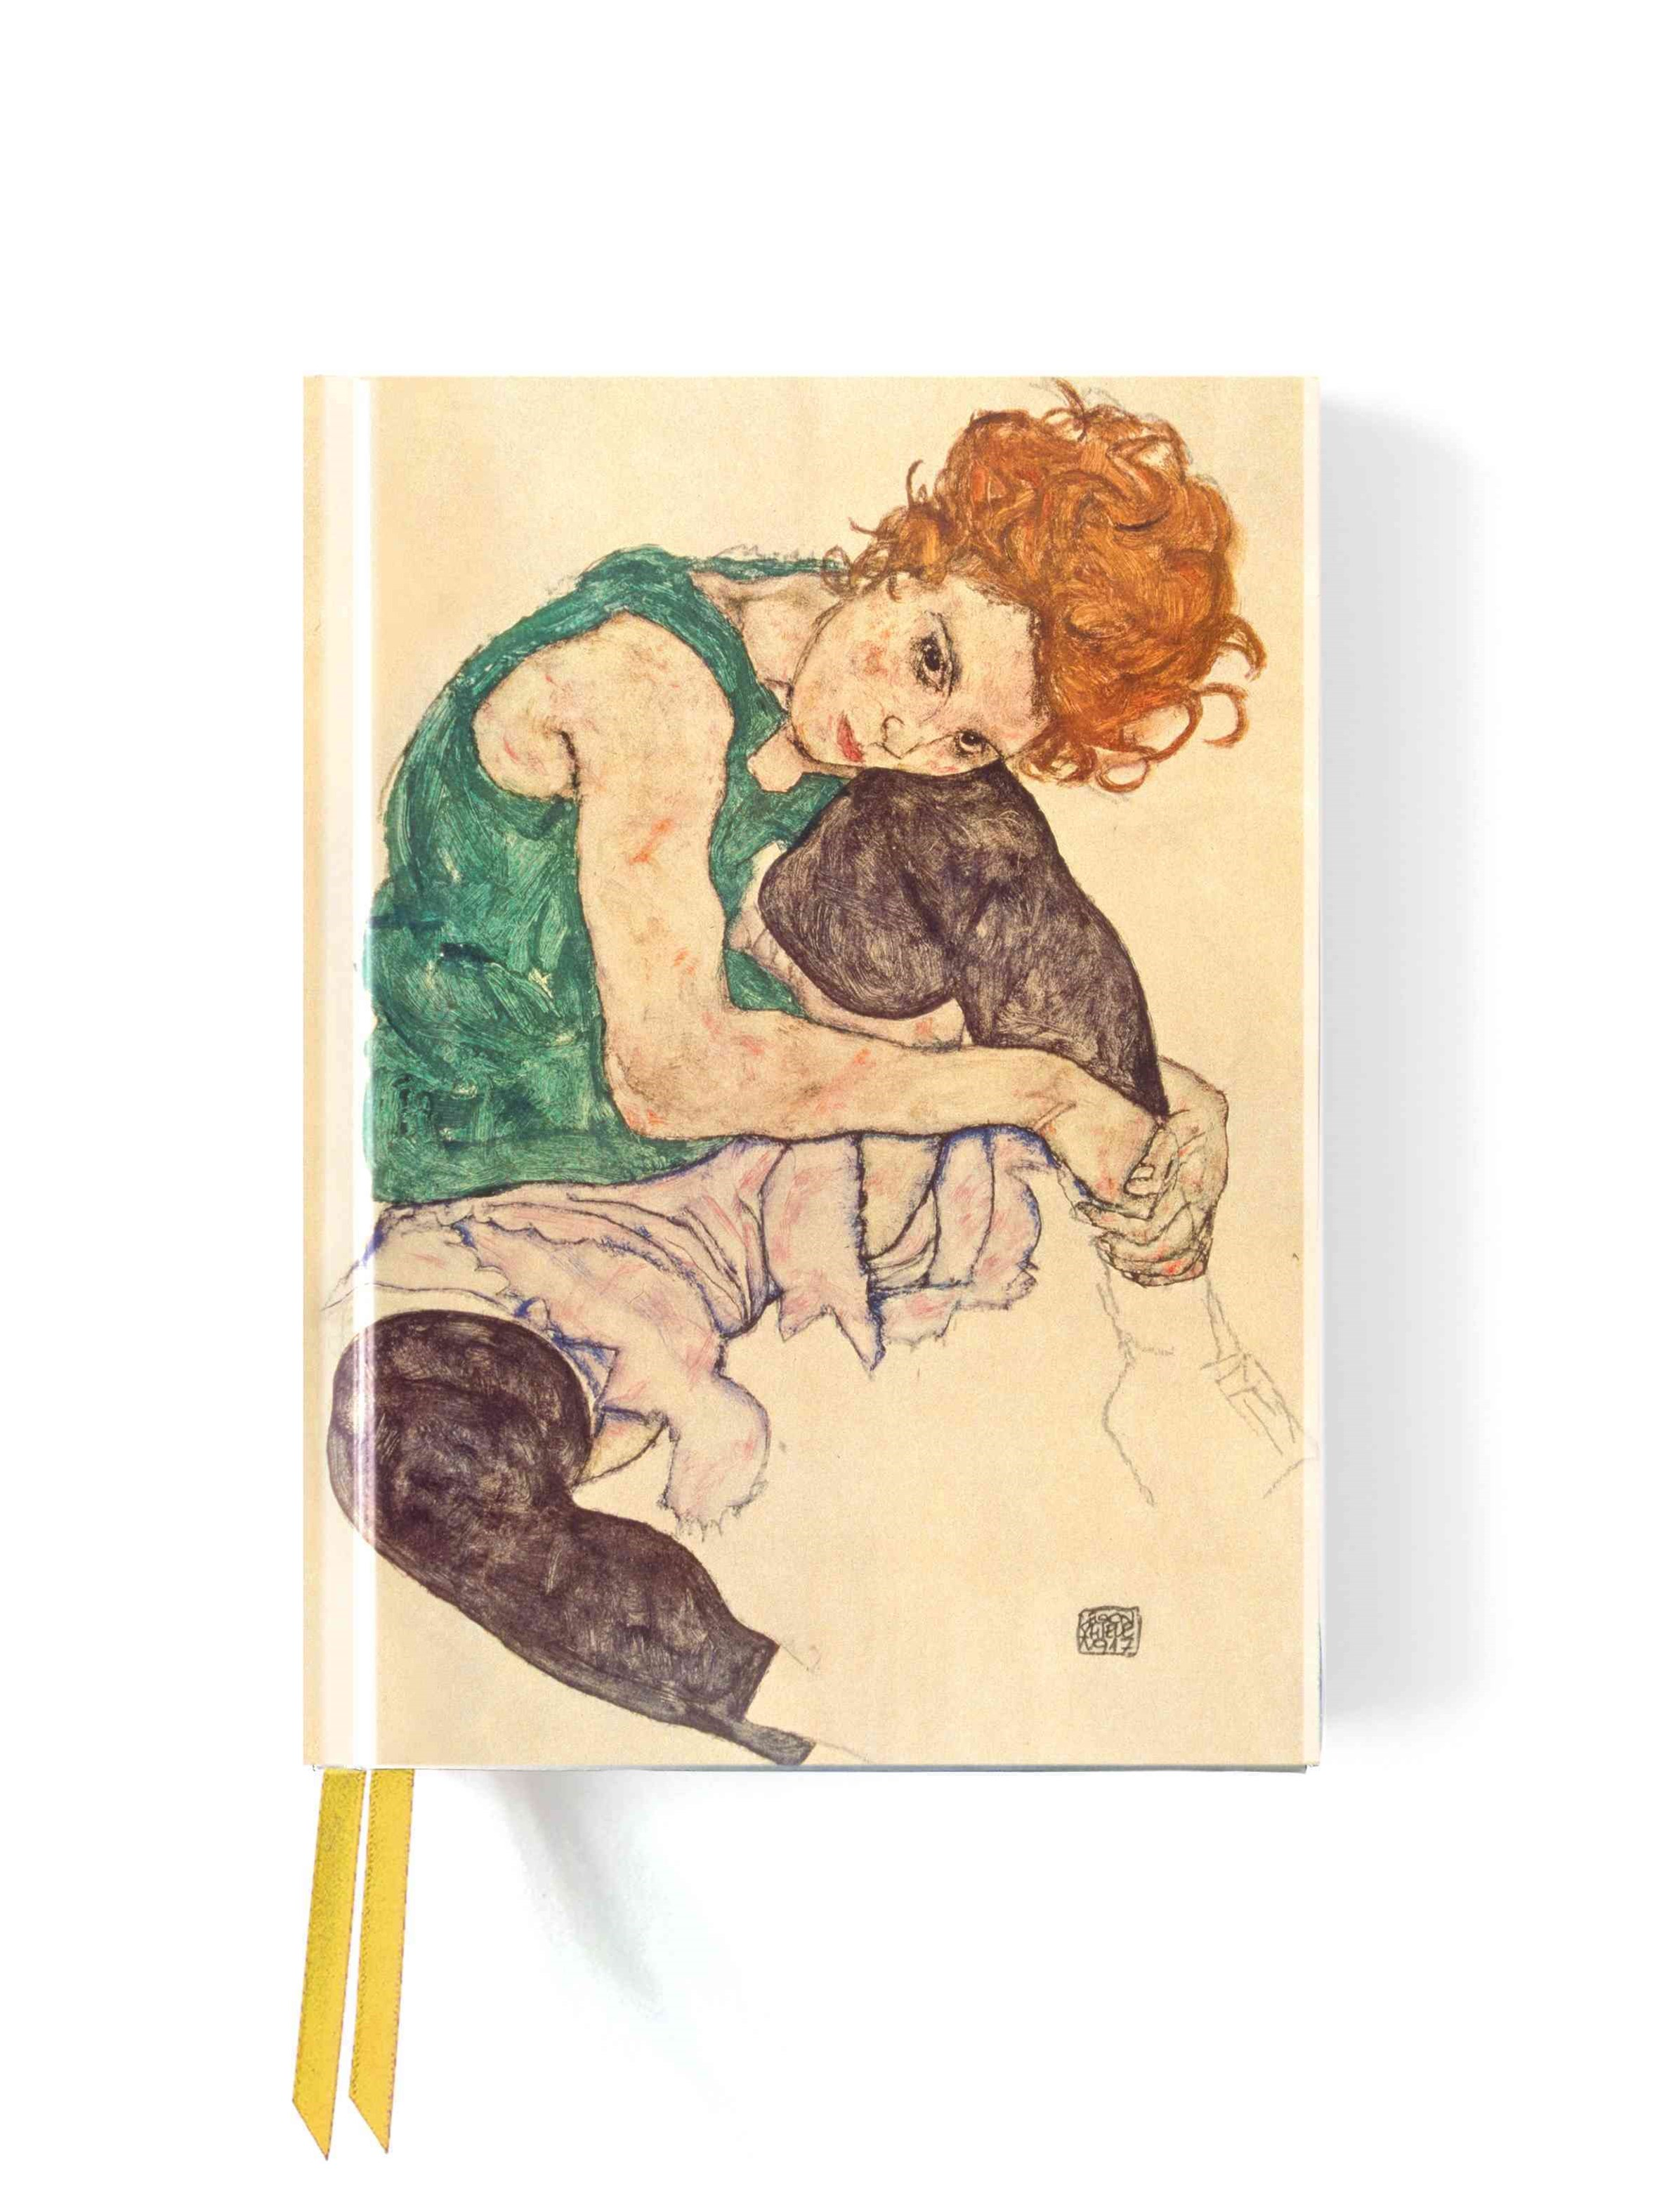 Foiled Journal #95: Seated Woman Egon Schiele